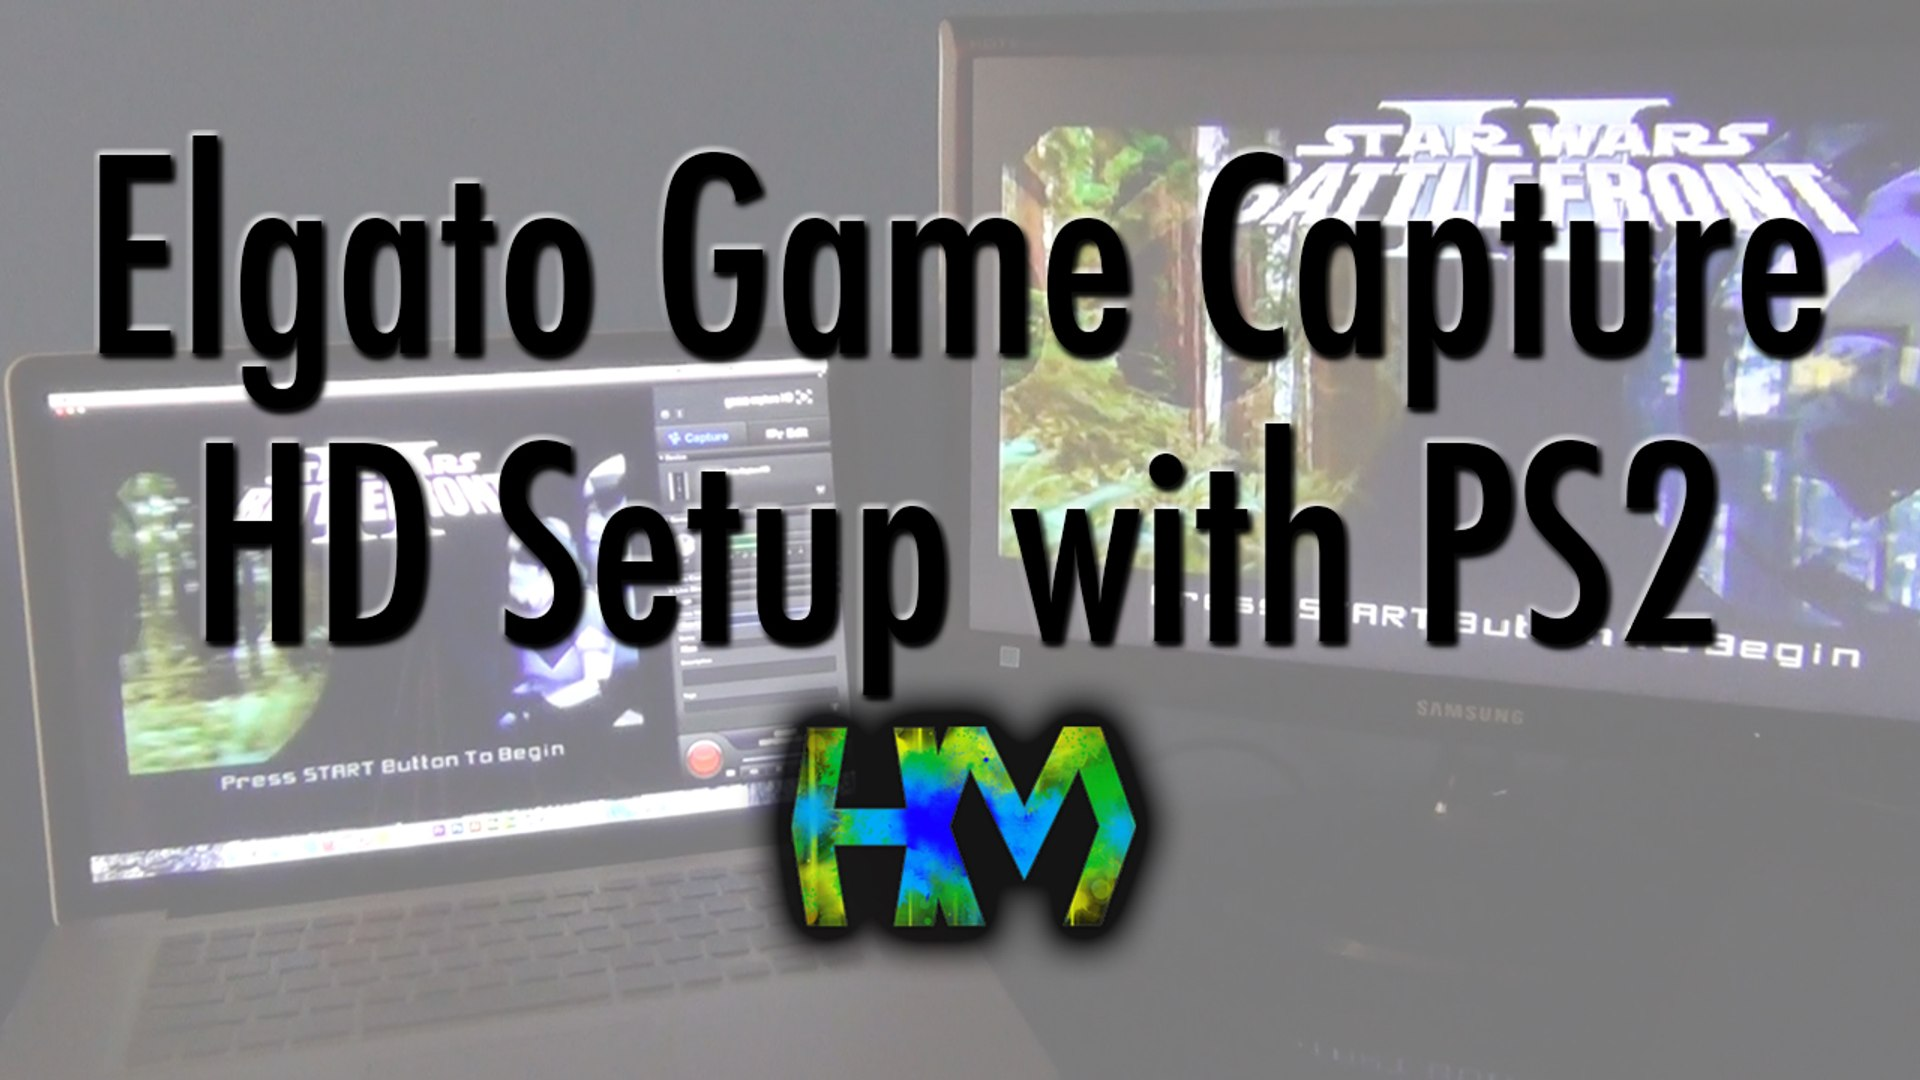 Elgato Game Capture HD Setup with PS2 and Mac